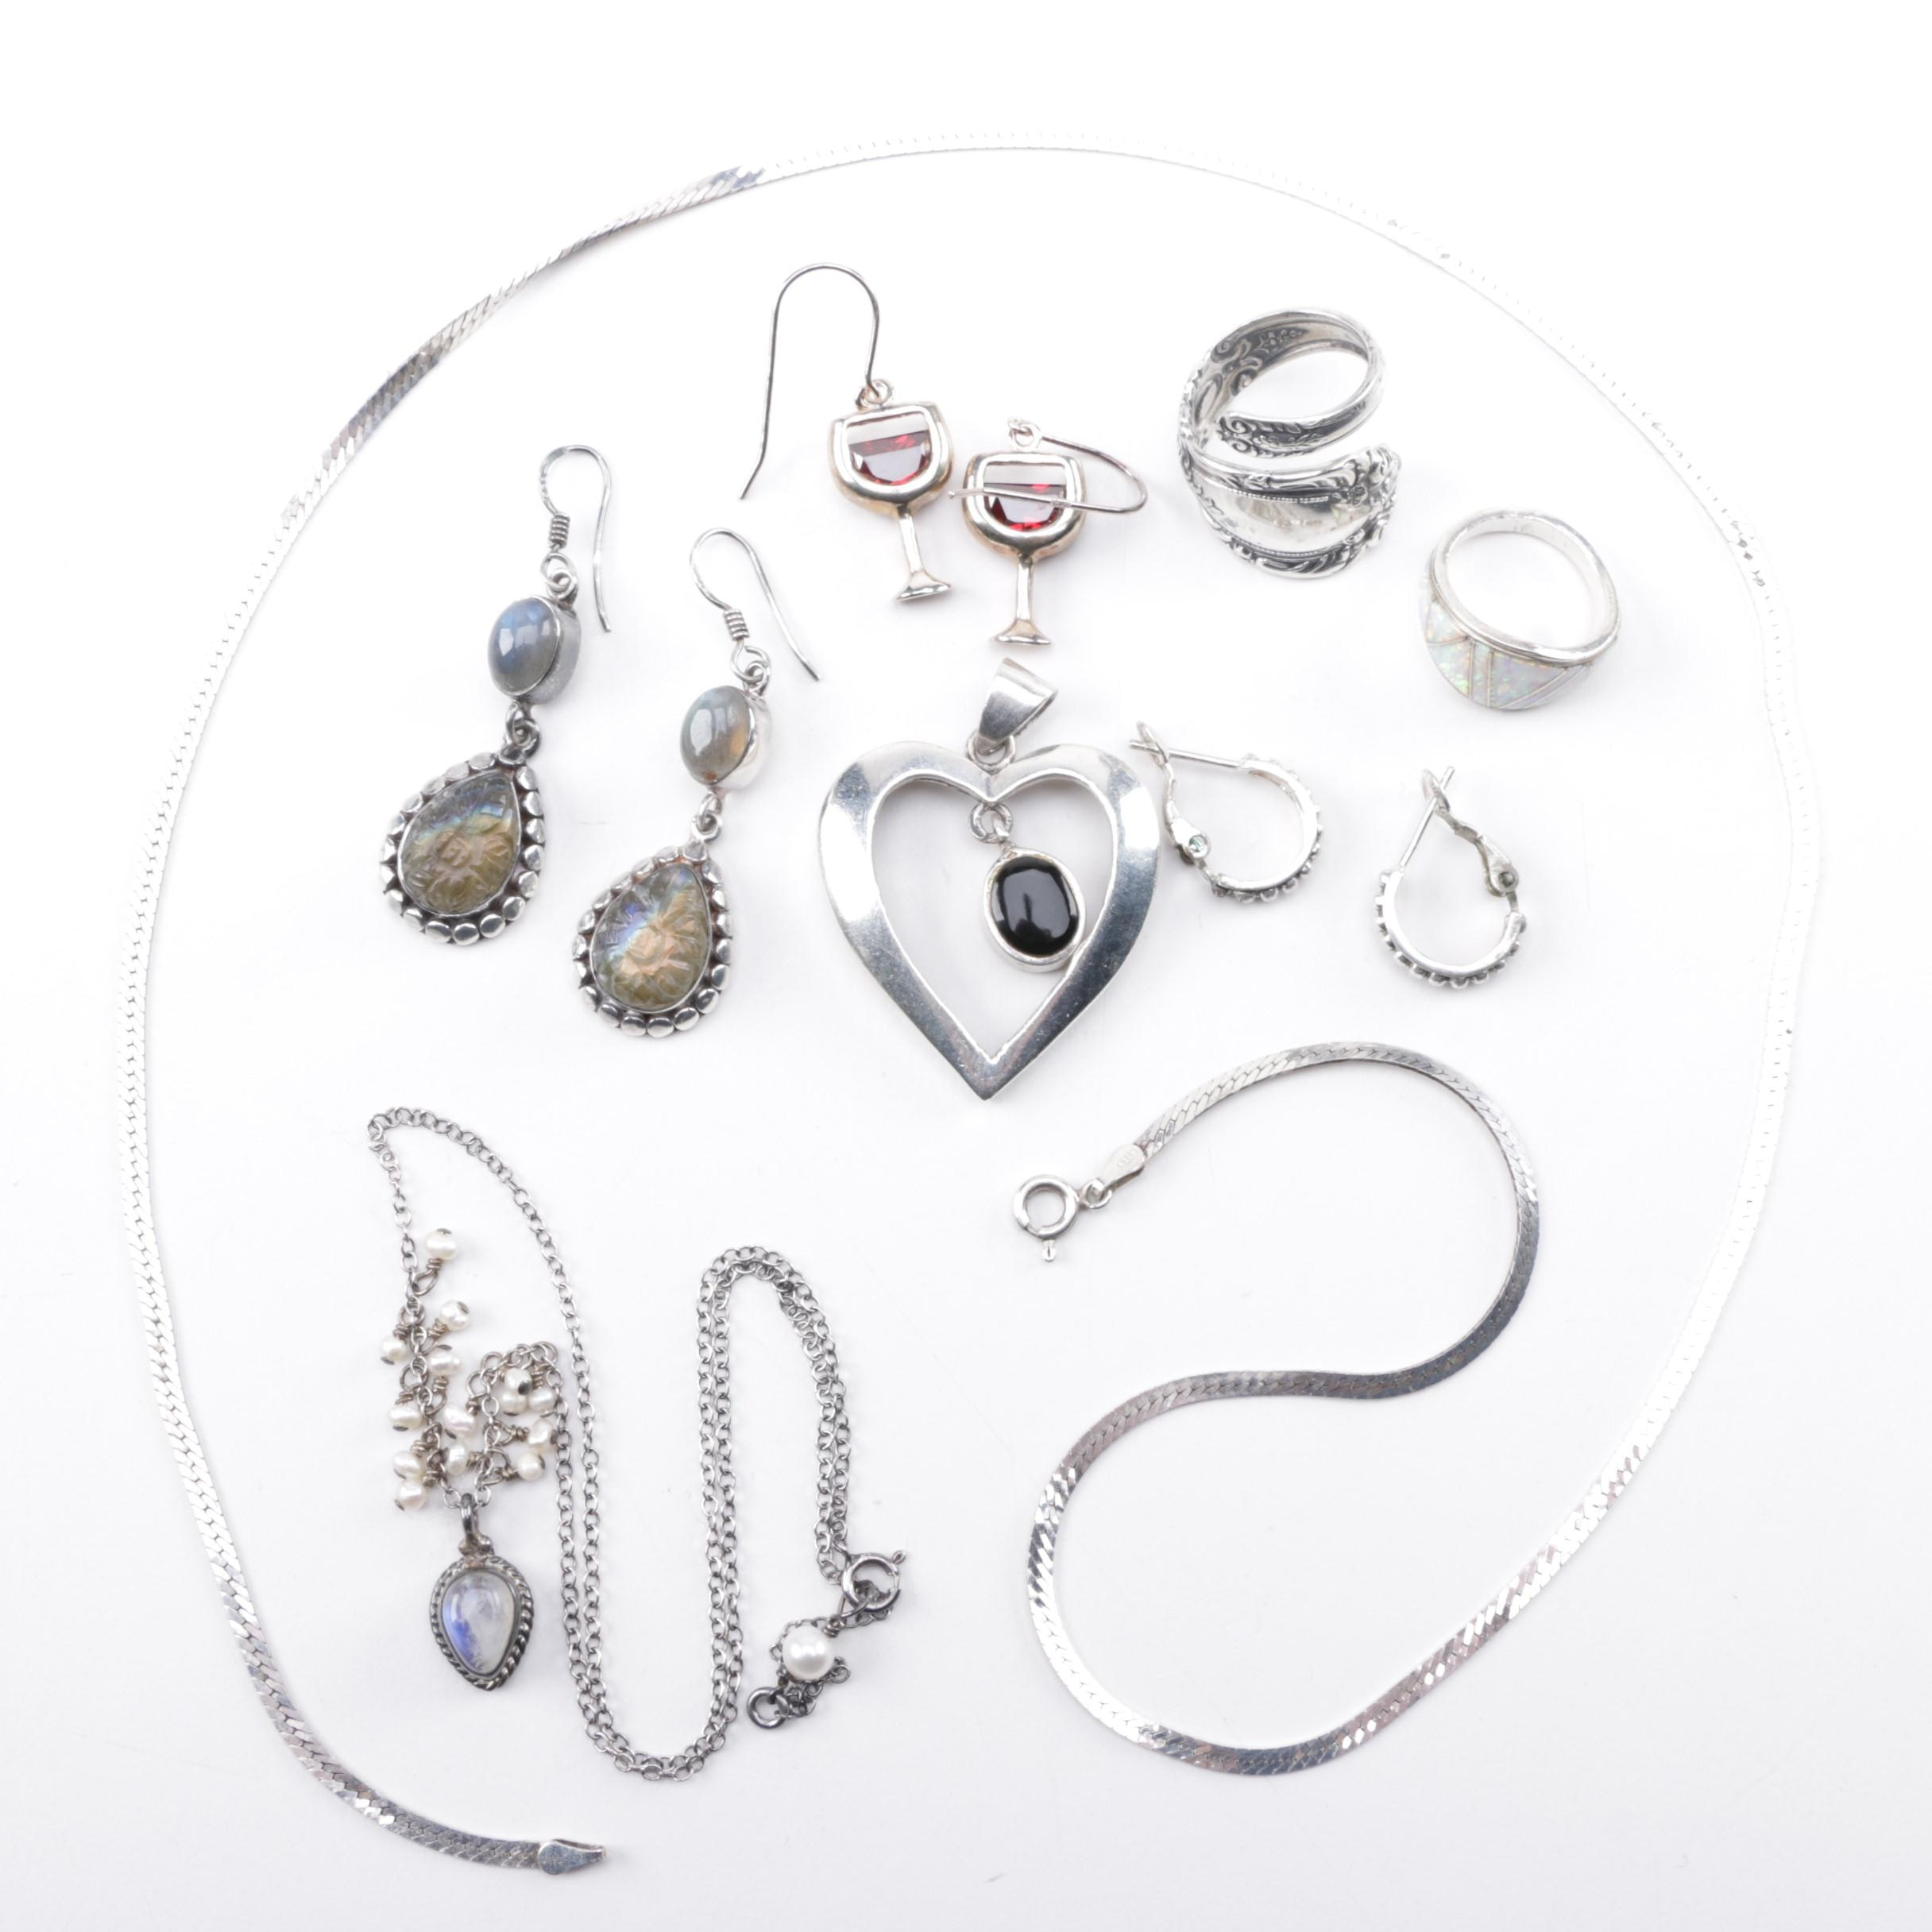 Grouping of Sterling Silver Jewelry Including Labradorite